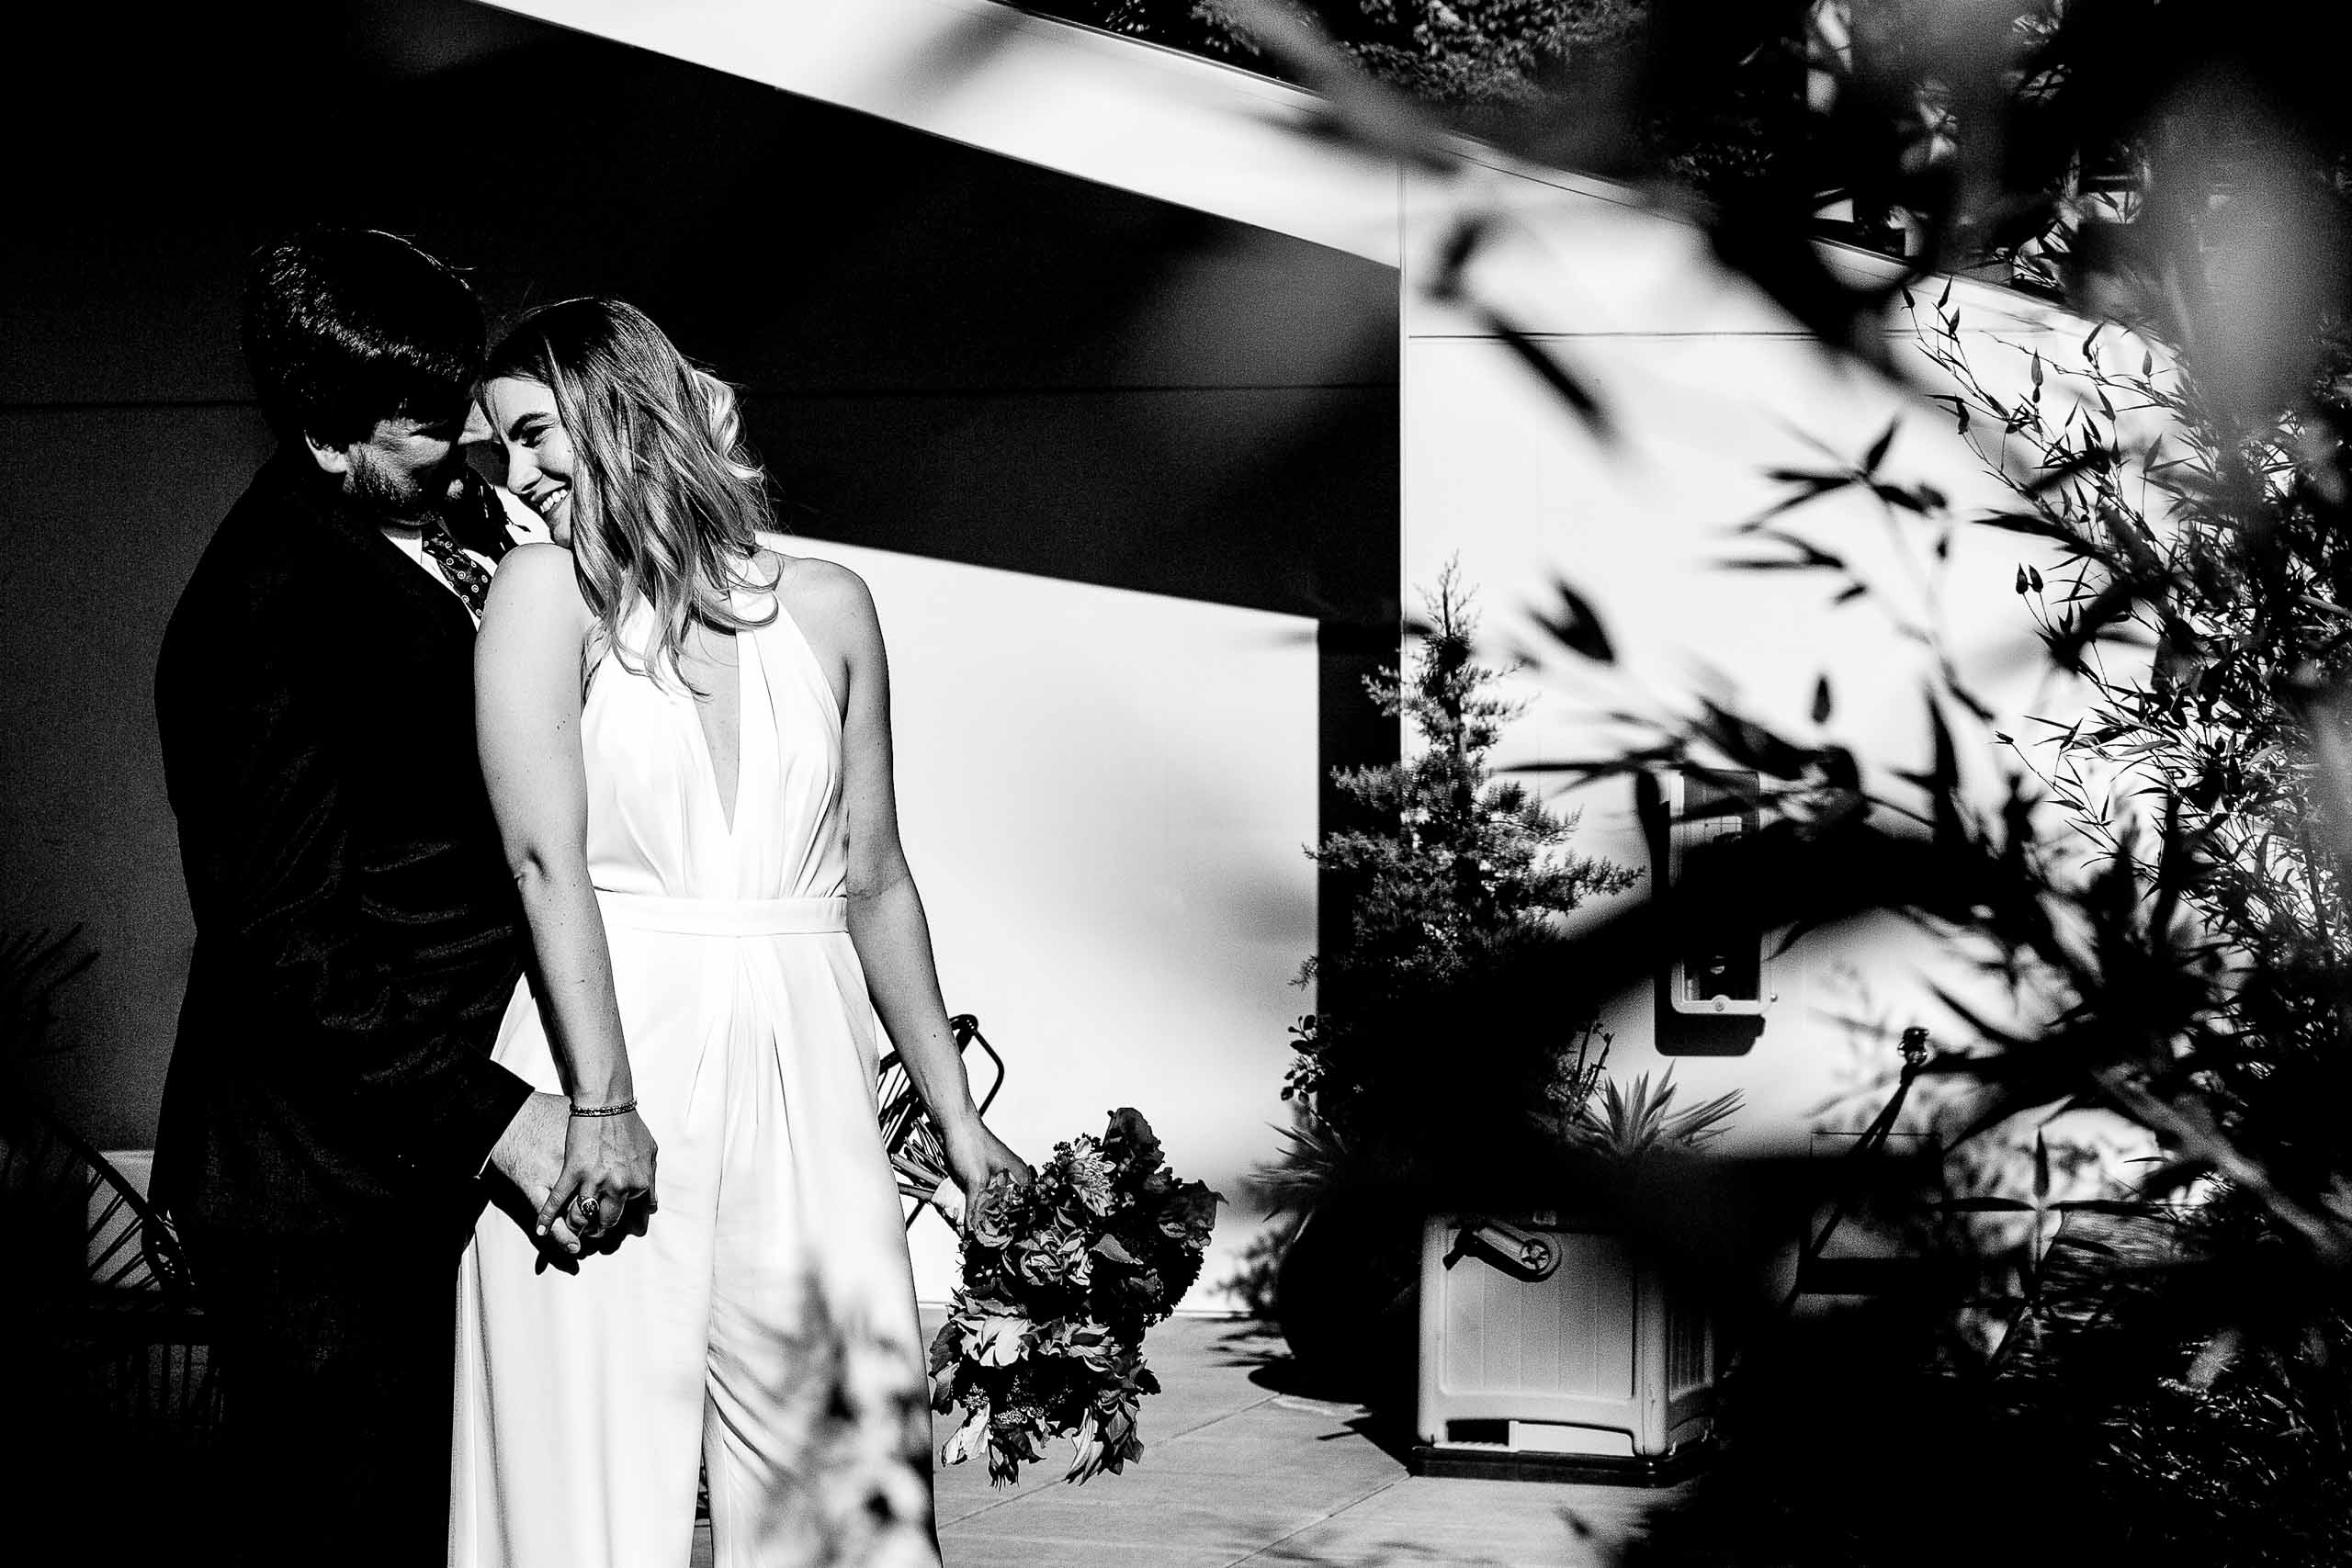 Nice black and white portrait of a bride and groom moments before their Jupiter Next wedding